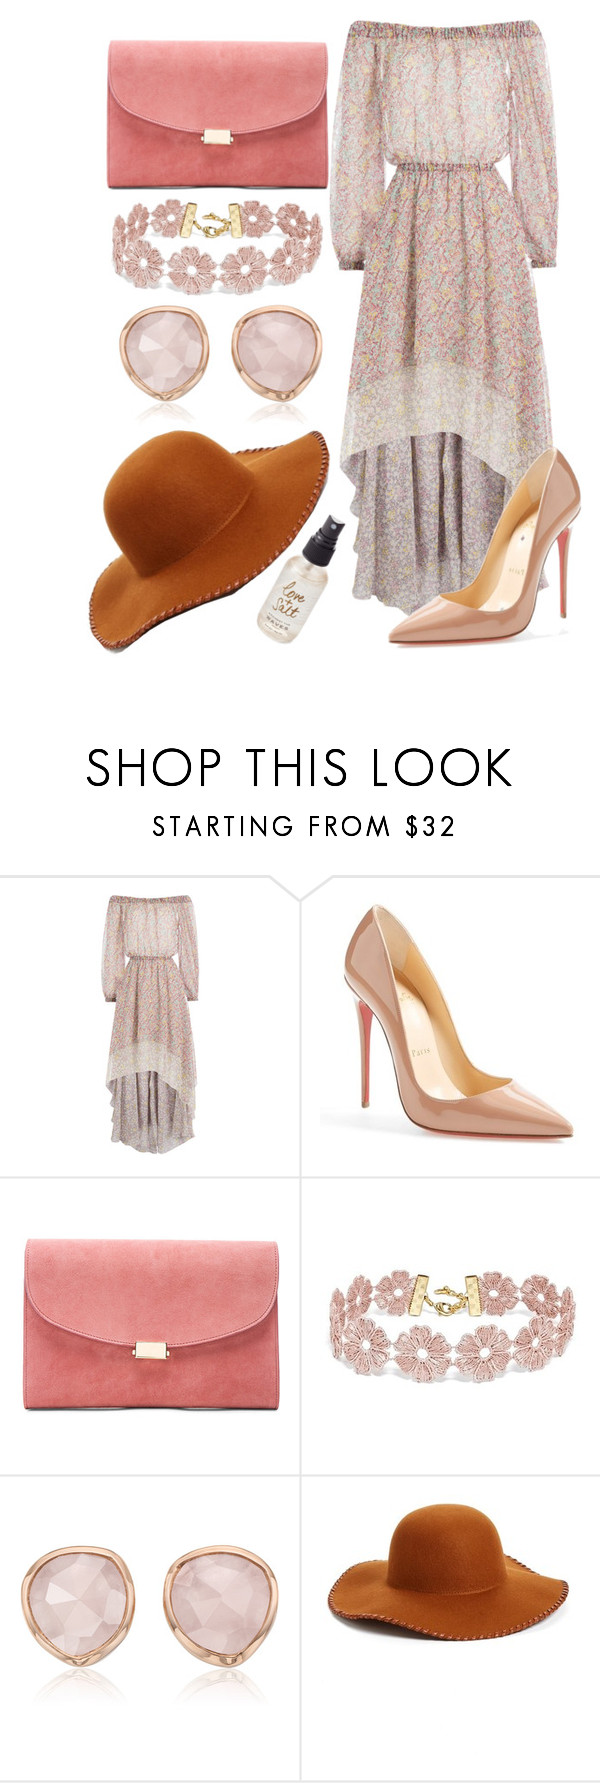 """""""Beachy+Floral"""" by hannahgrinton on Polyvore featuring Philosophy di Lorenzo Serafini, Christian Louboutin, Mansur Gavriel, BaubleBar, Monica Vinader, Phase 3 and Olivine"""